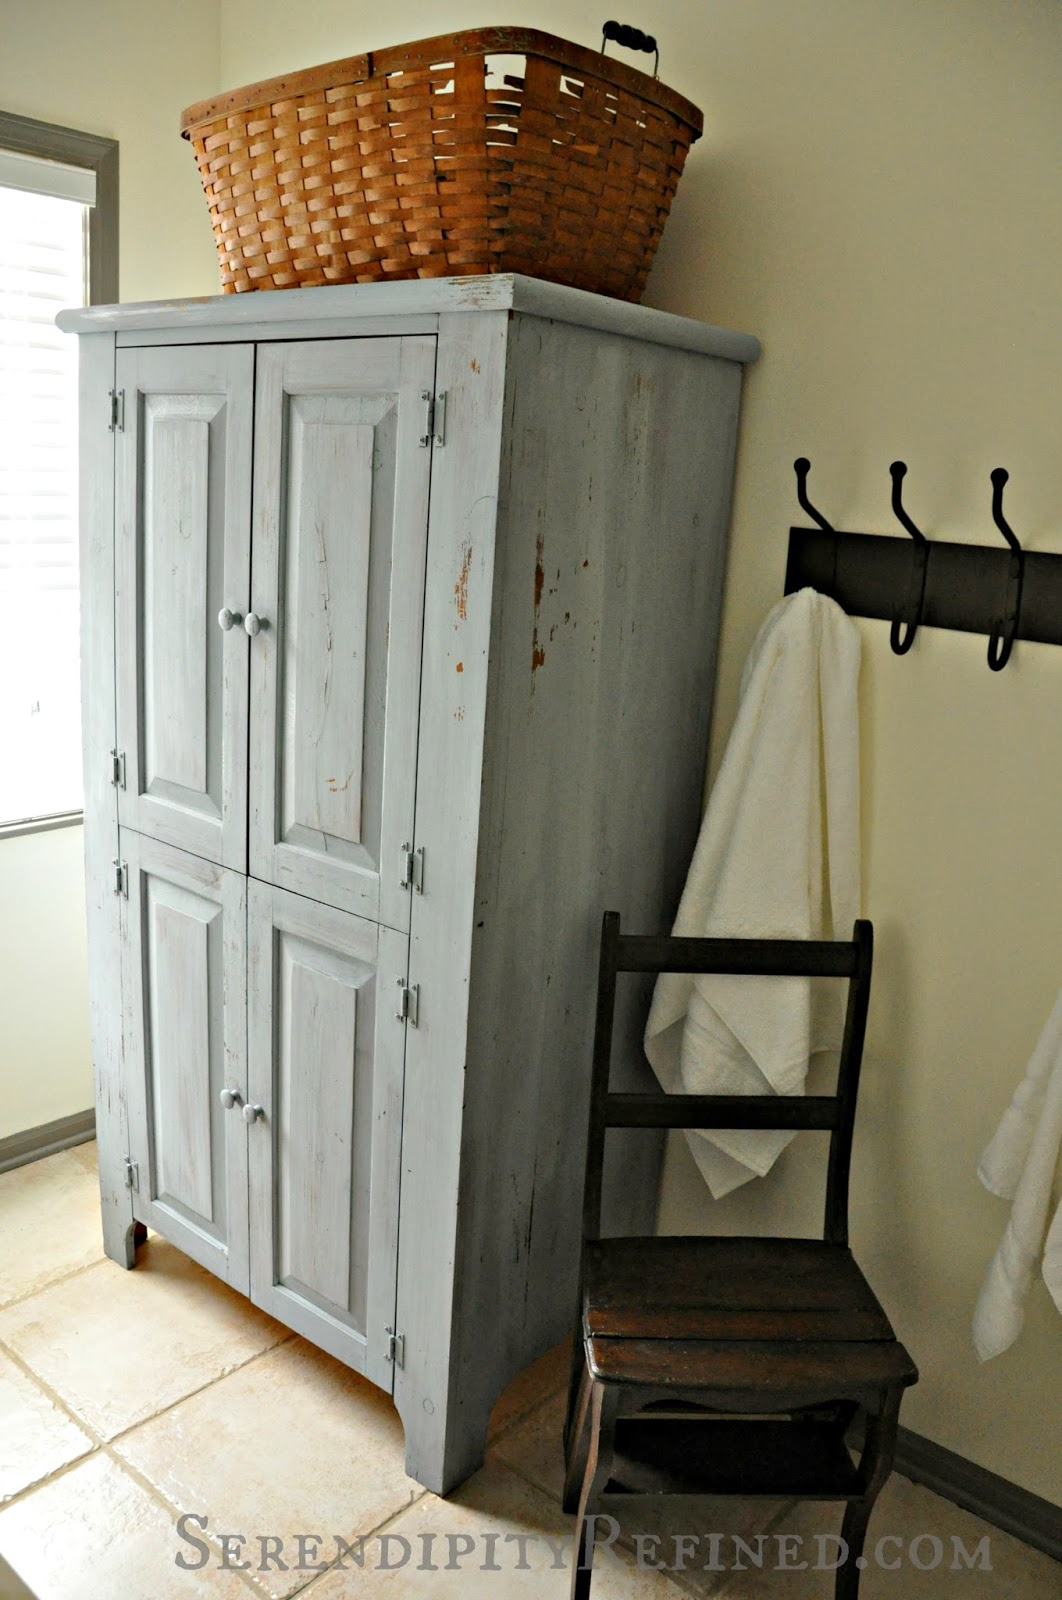 Awesome Serendipity Refined Blog Milk Painted Rustic Farmhouse Linen Cabinet Tutorial